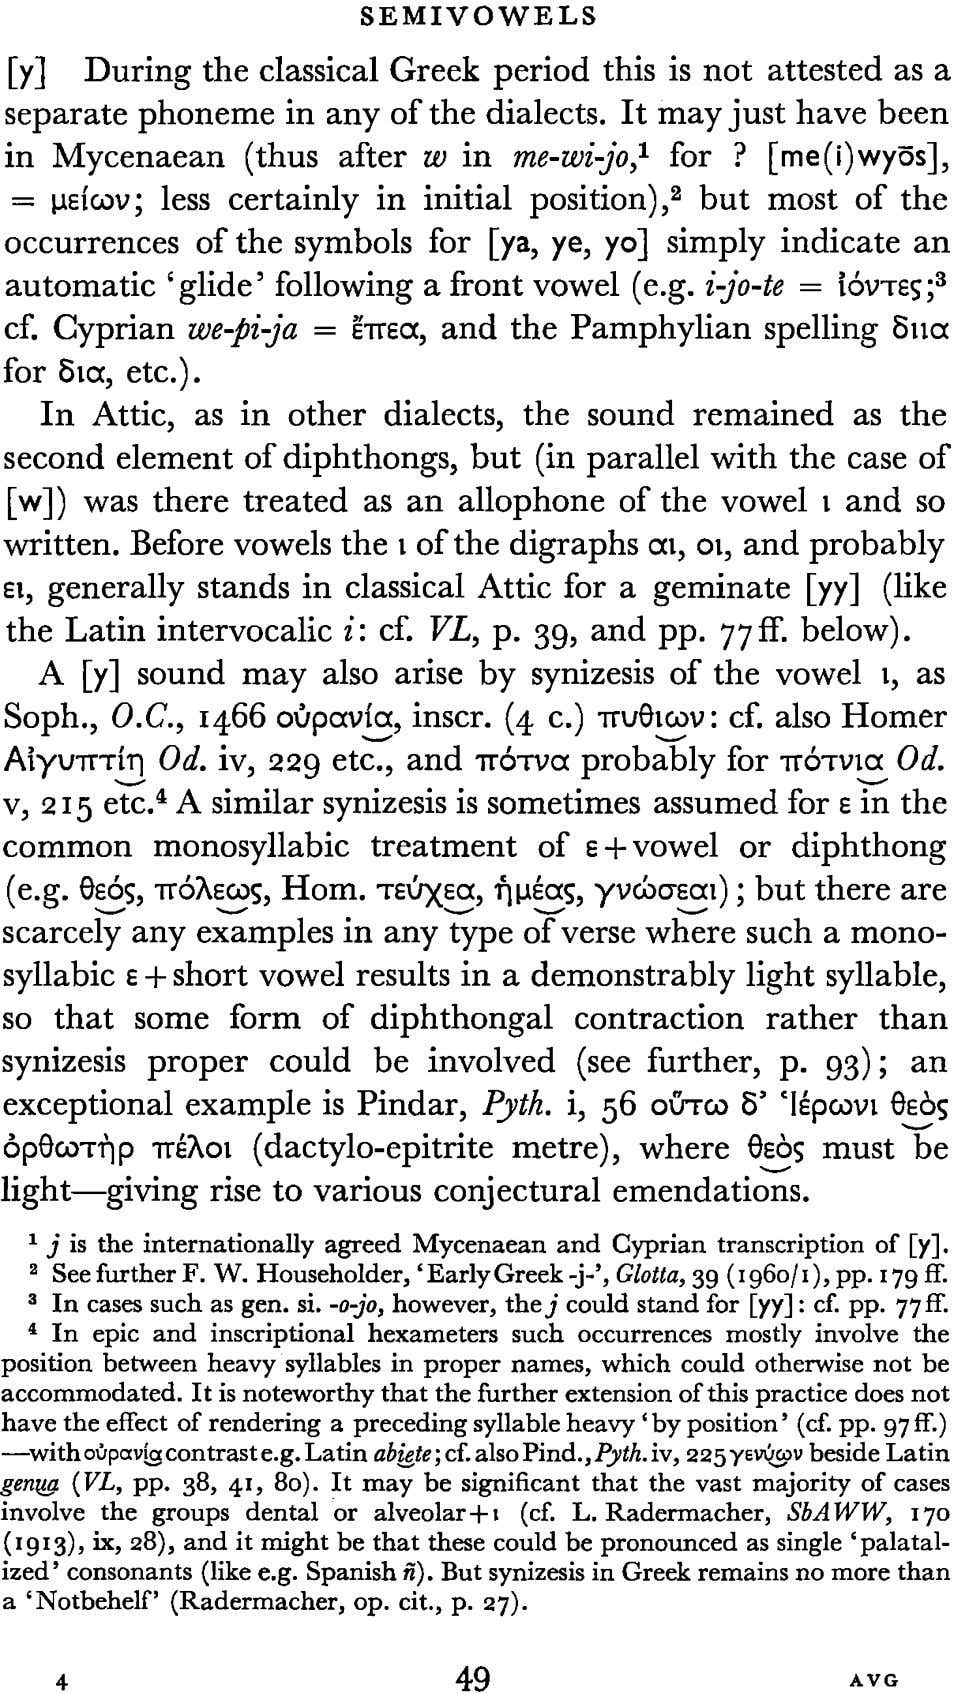 SEMIVOWELS [/] During the classical Greek period this is not attested as a separate phoneme